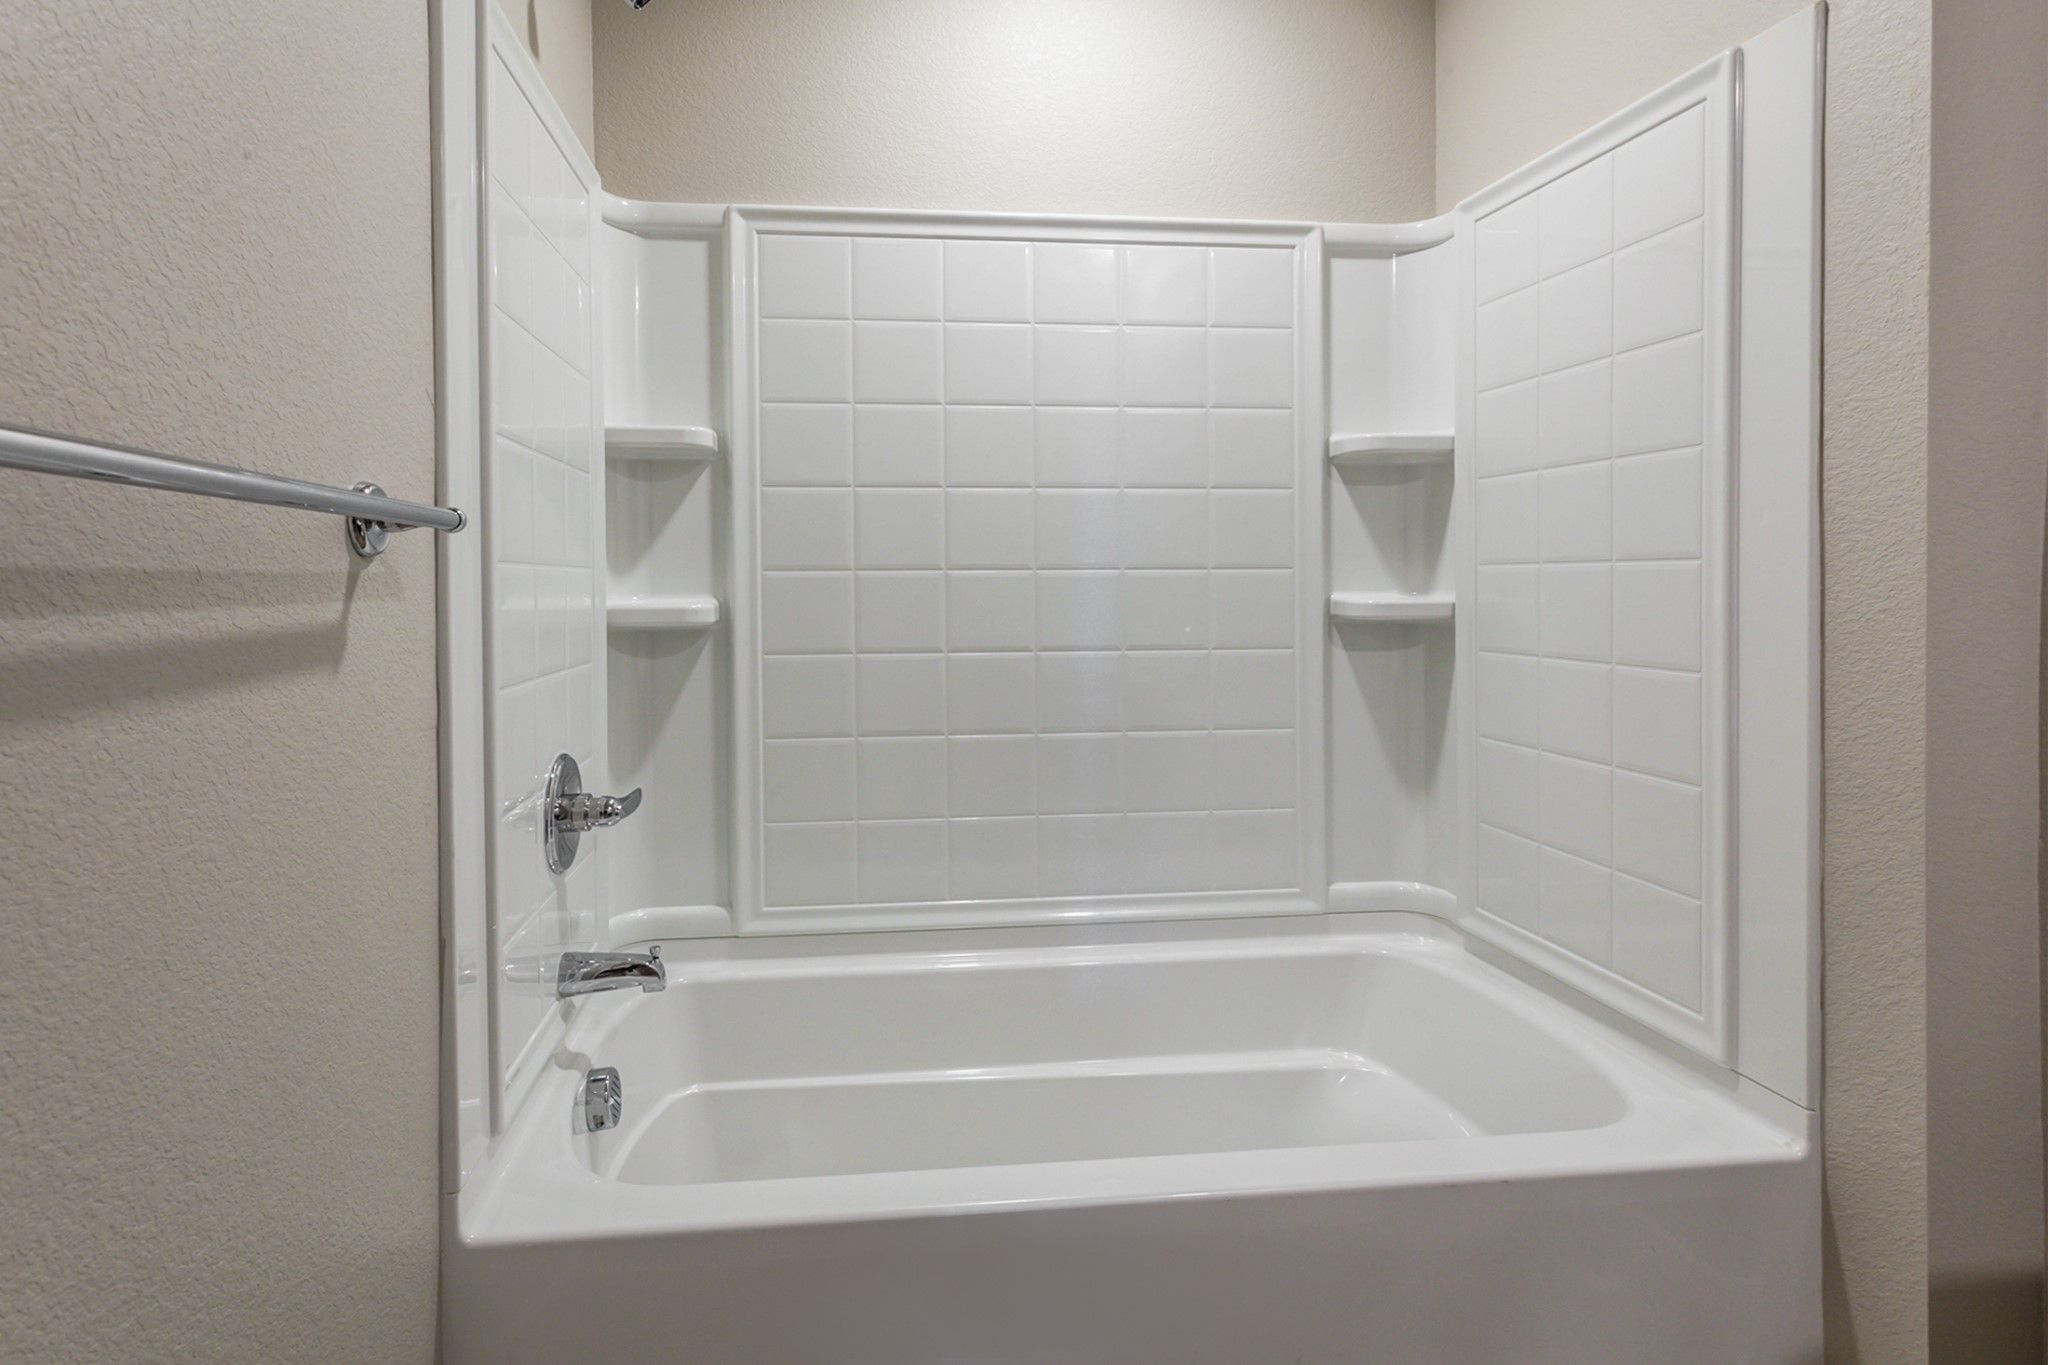 Bathroom featured in The Ouray at Mosaic By Hartford Homes in Fort Collins-Loveland, CO